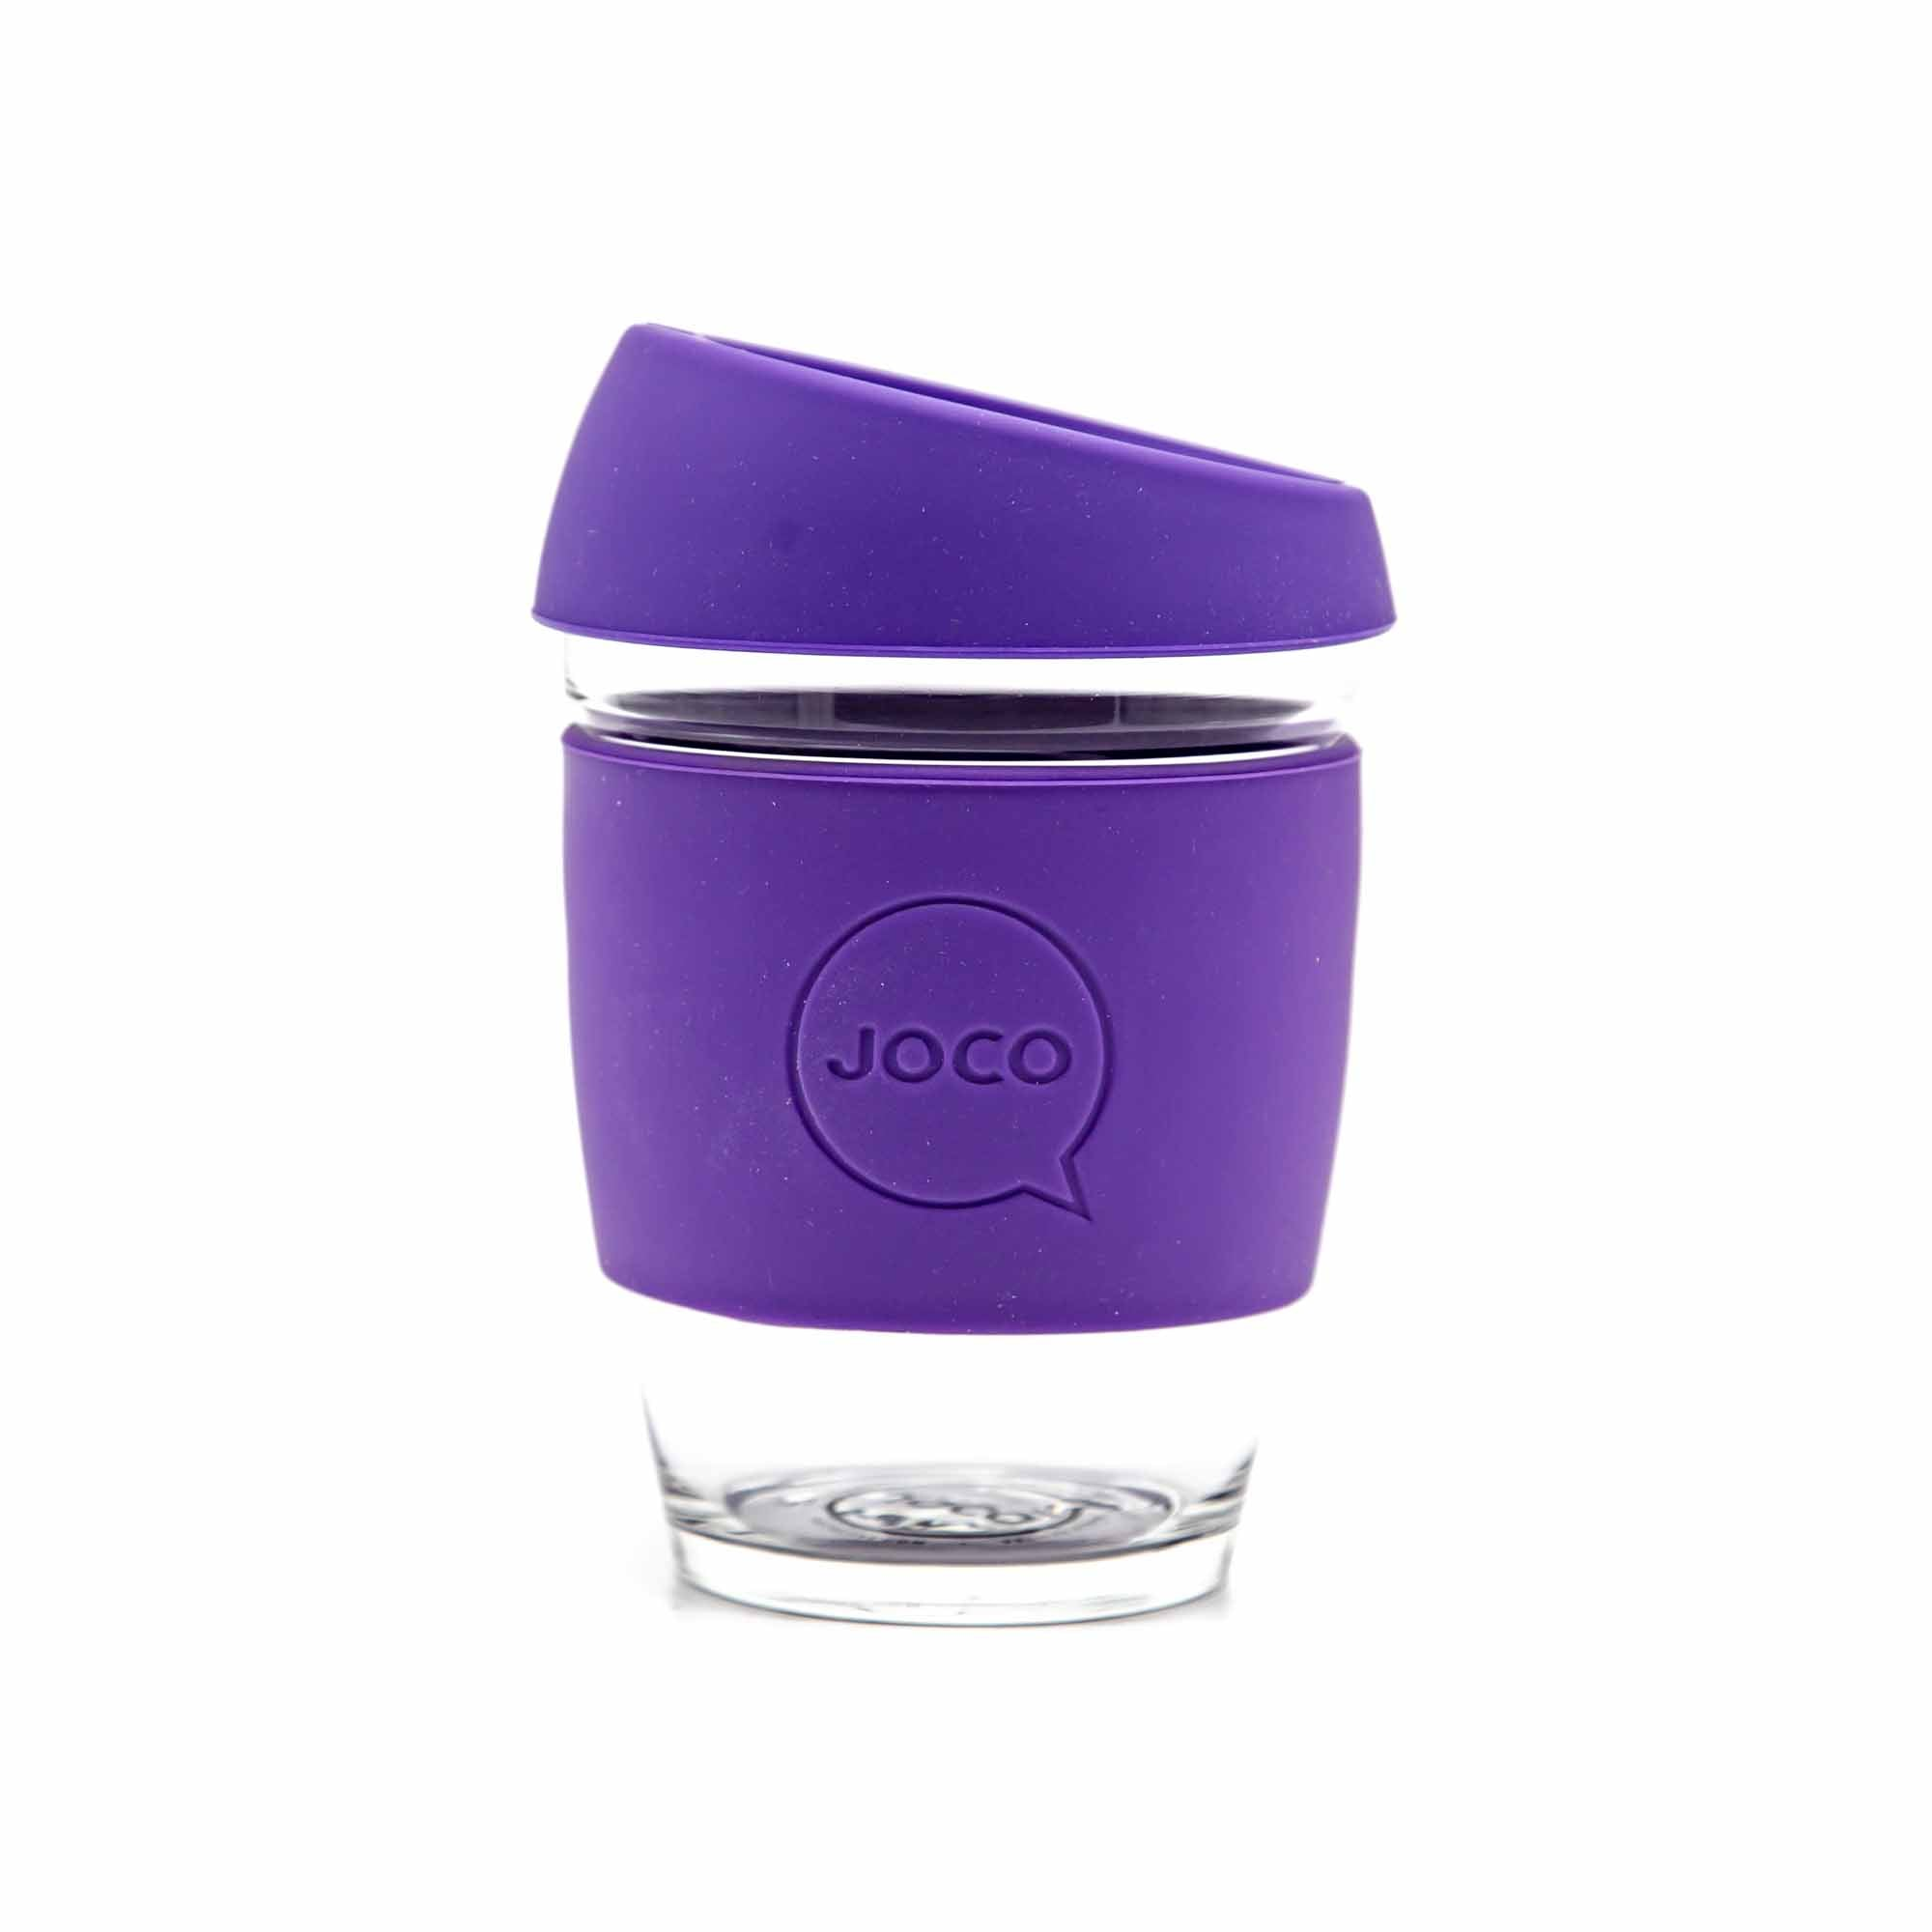 Joco Reusable Cup - 12oz - Purple - Mortise And Tenon